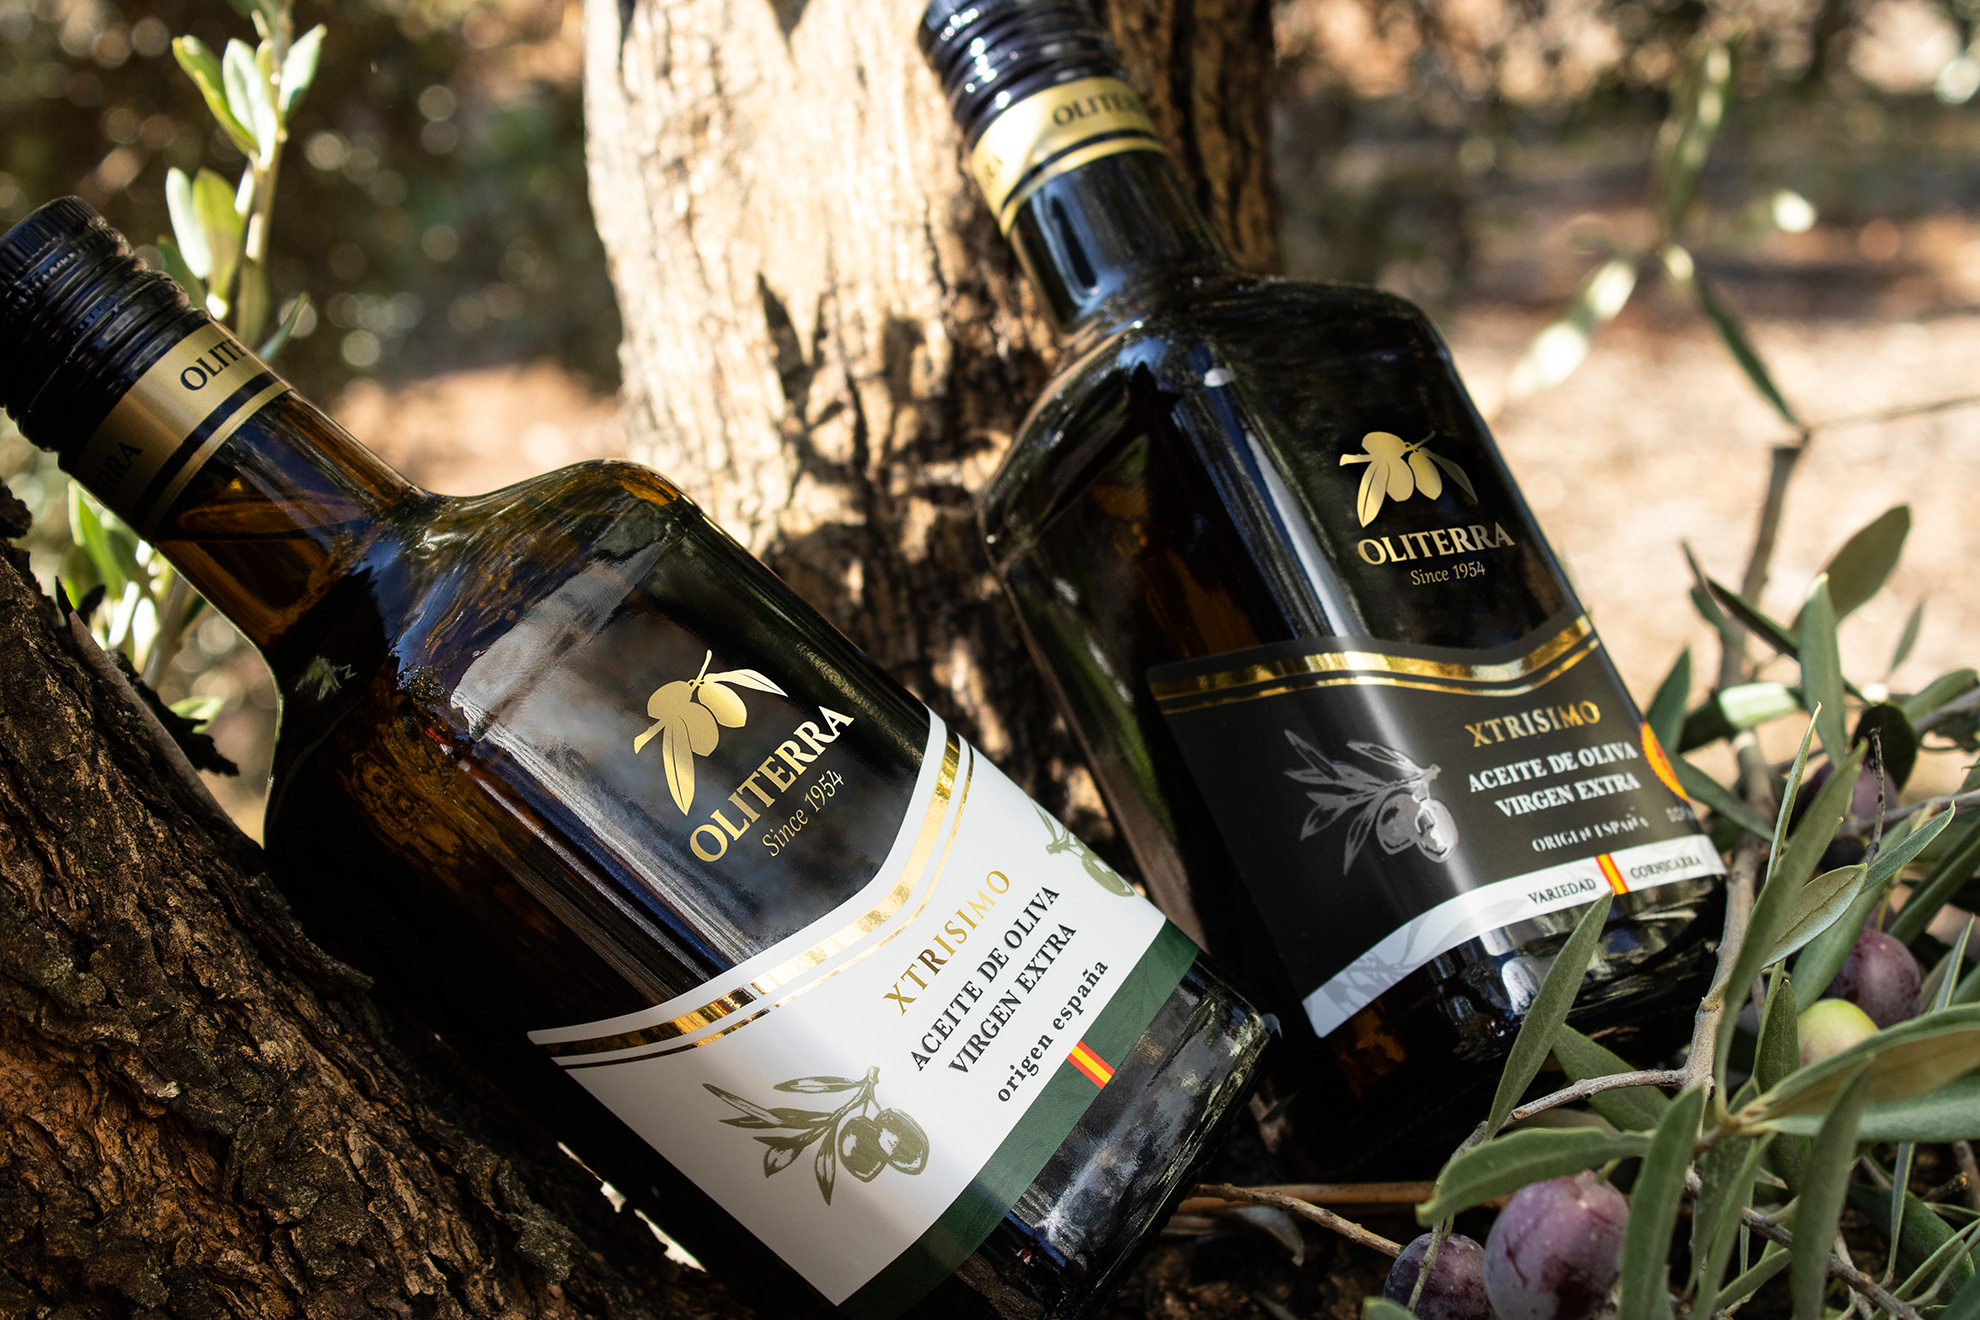 xtrisimo olive oil packaging design